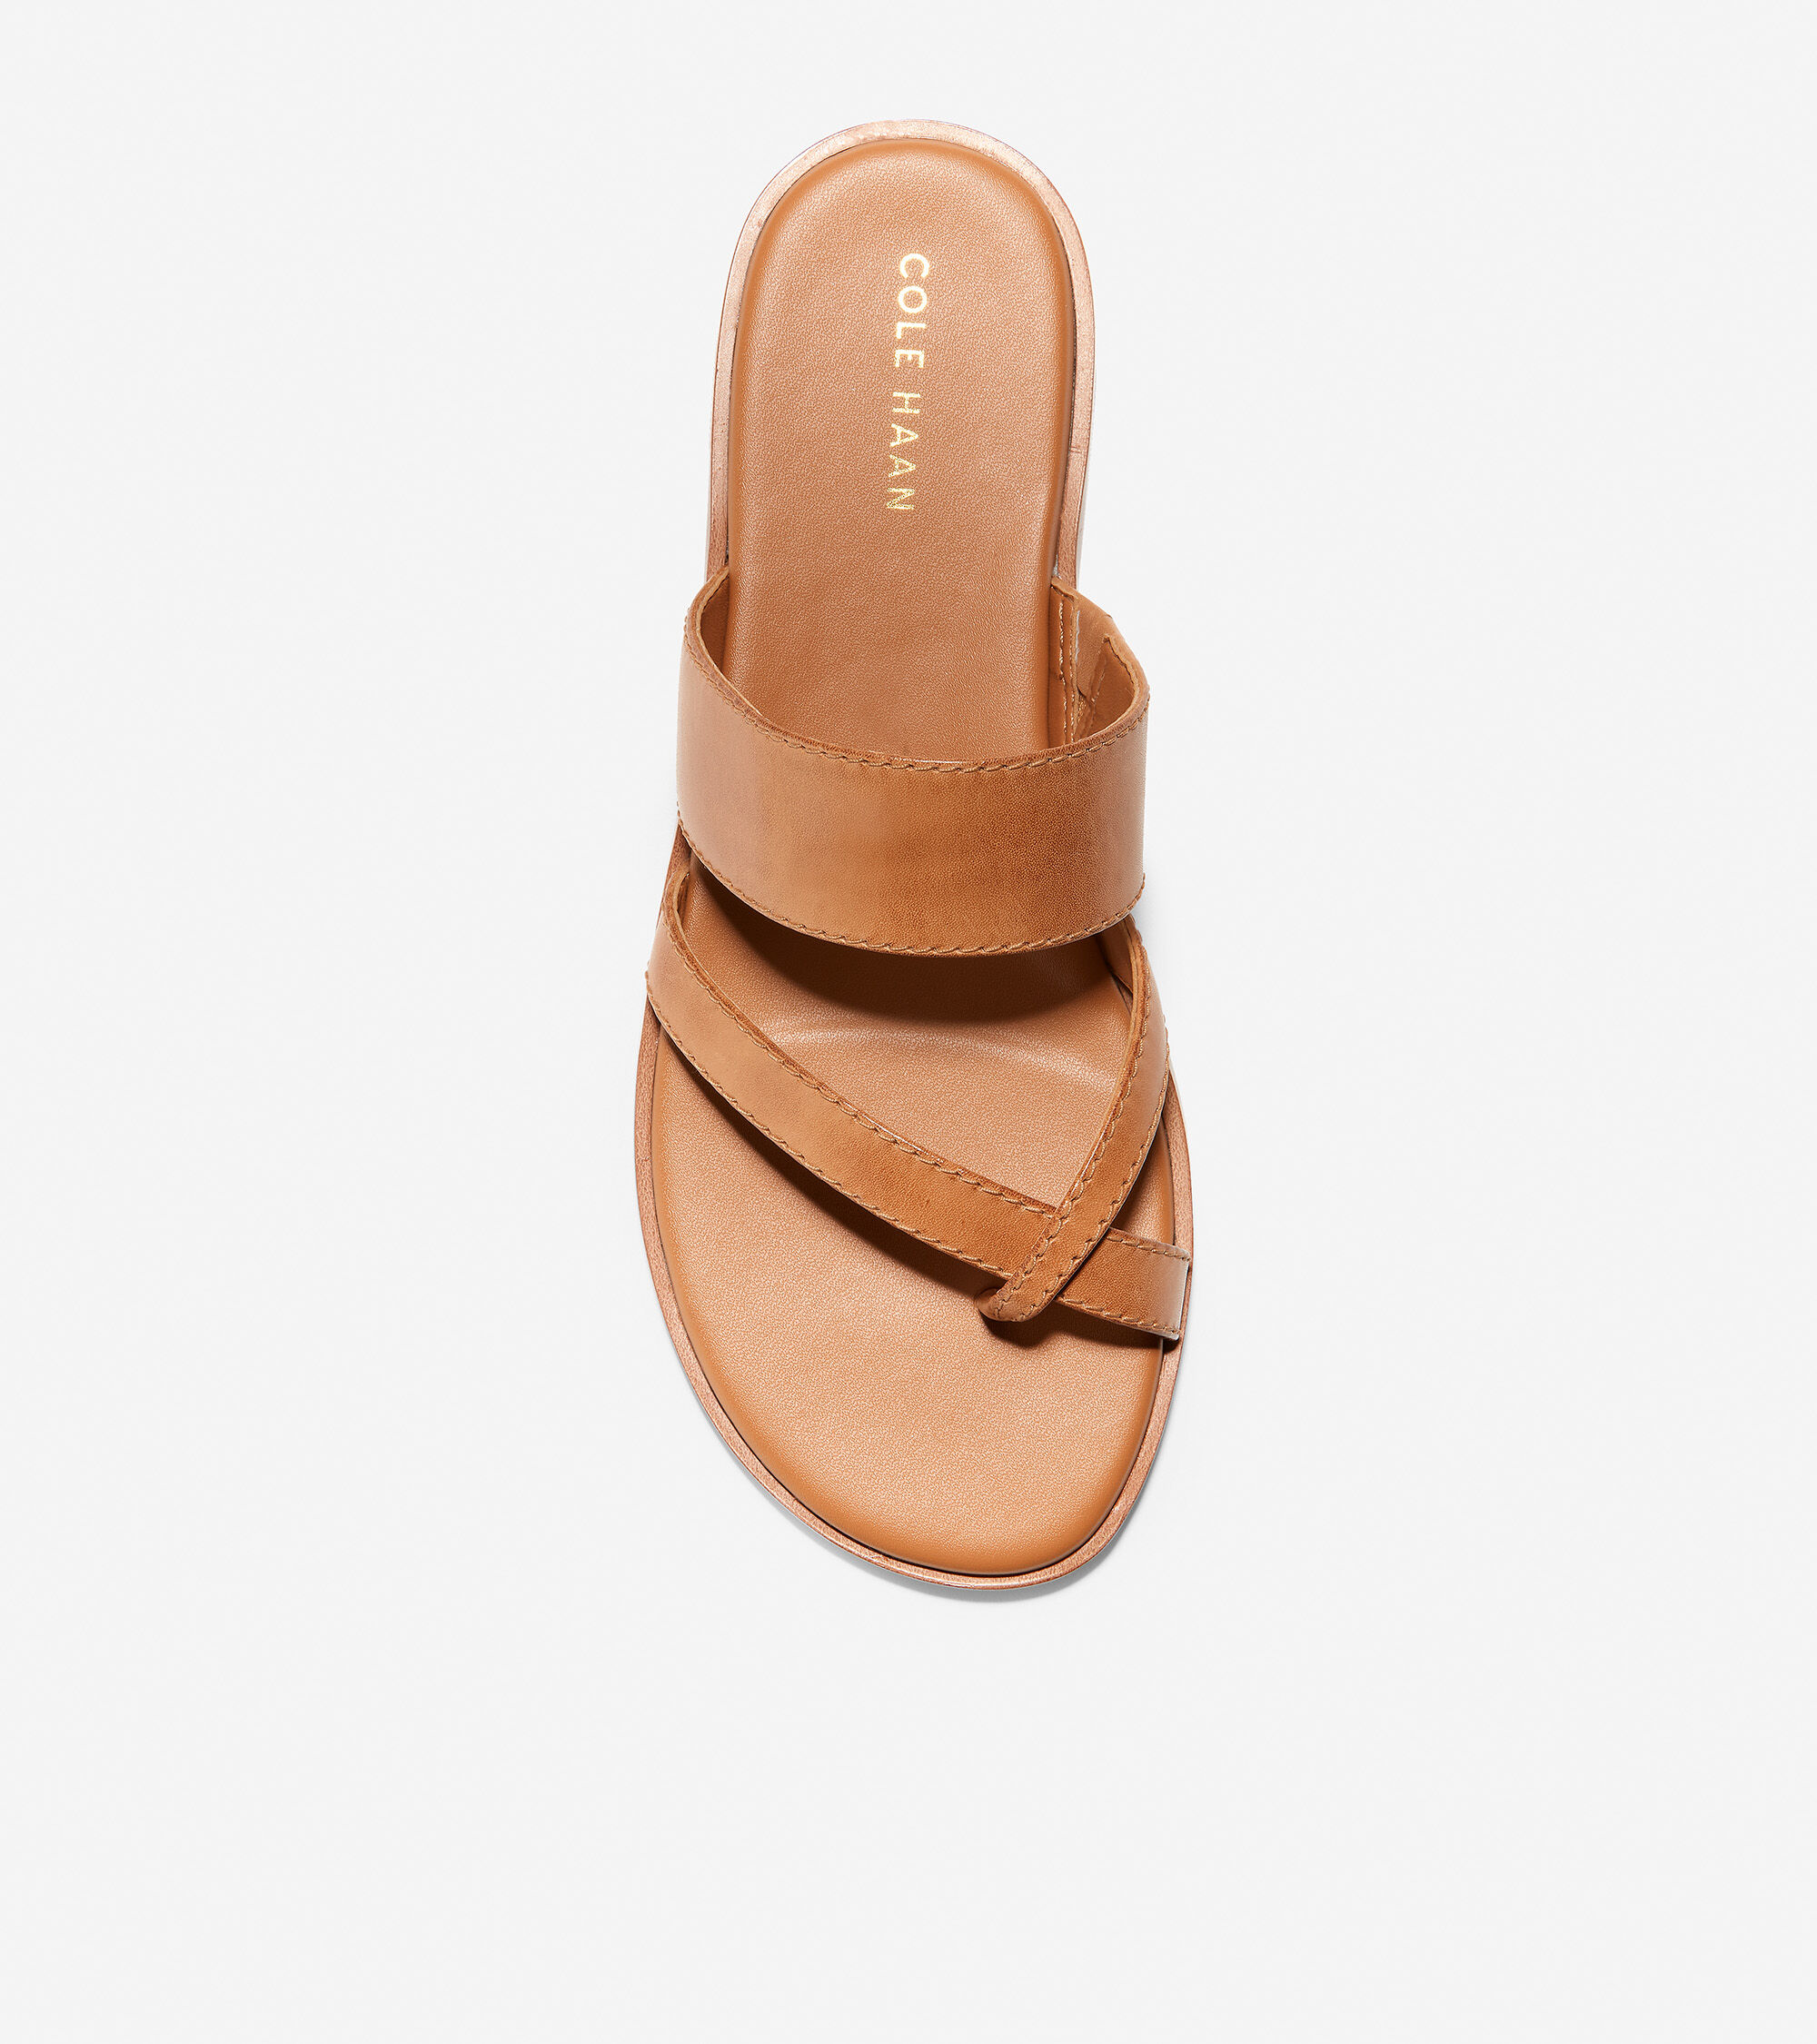 Felicia Thong Sandal in Pecan Leather